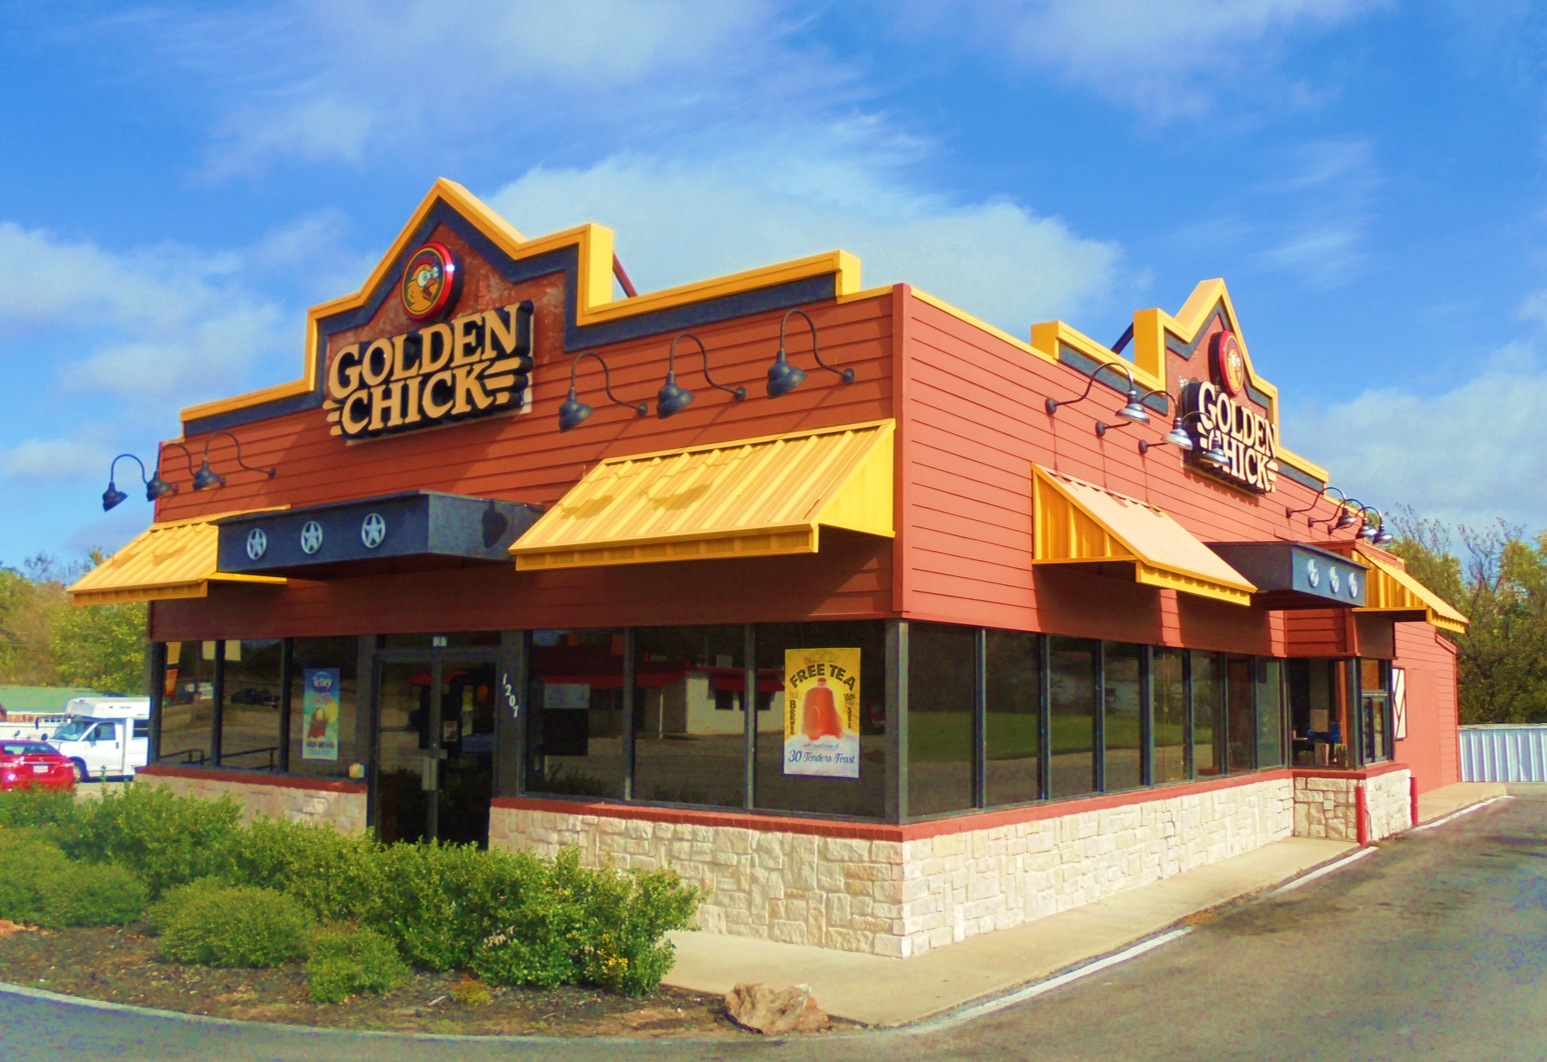 Golden Chick storefront.  Your local Golden Chick fast food restaurant in Bowie, Texas